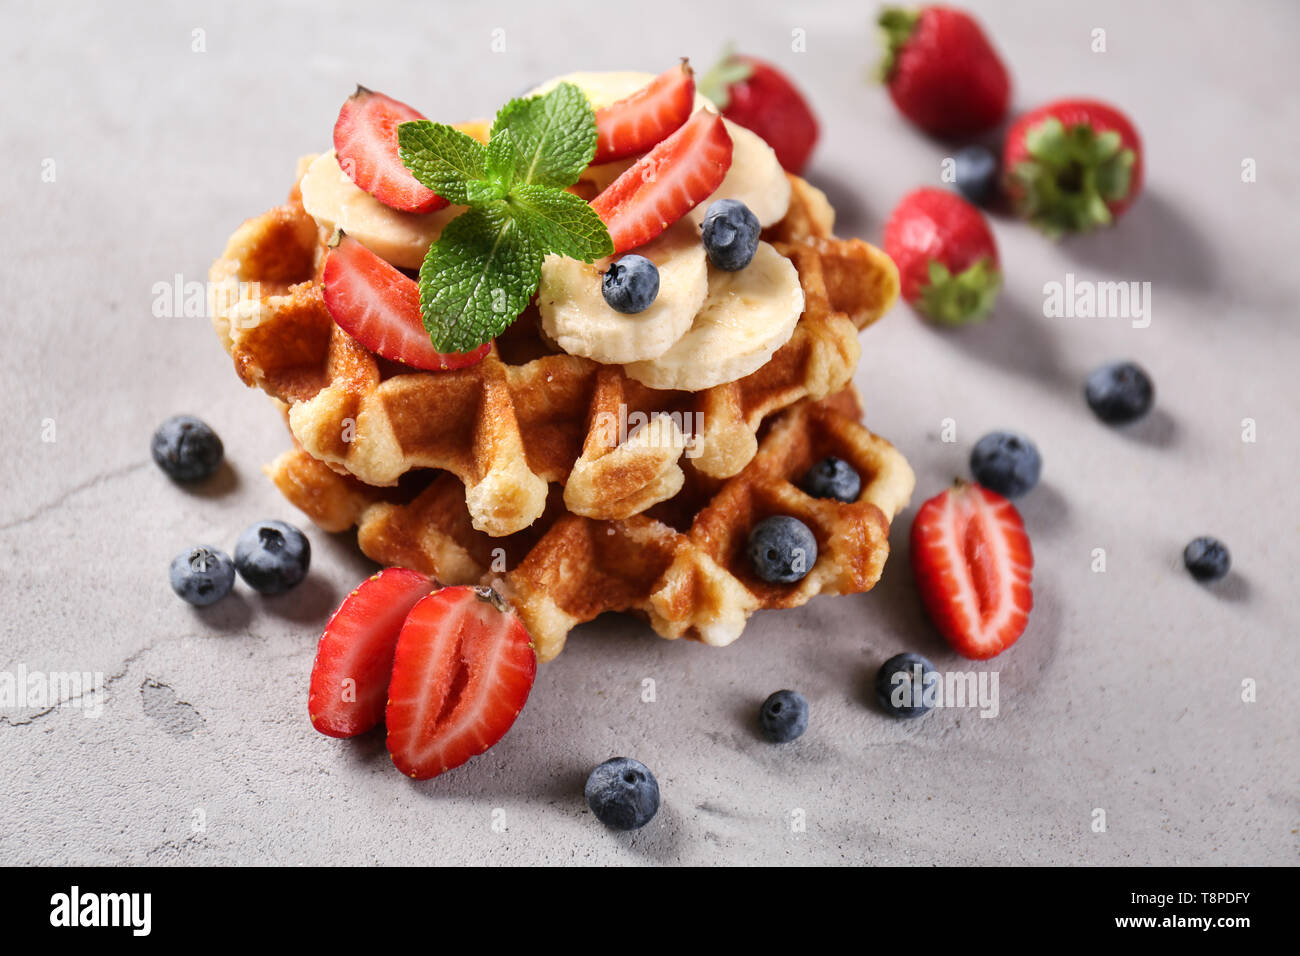 Delicious waffles with berries and banana on grey table - Stock Image